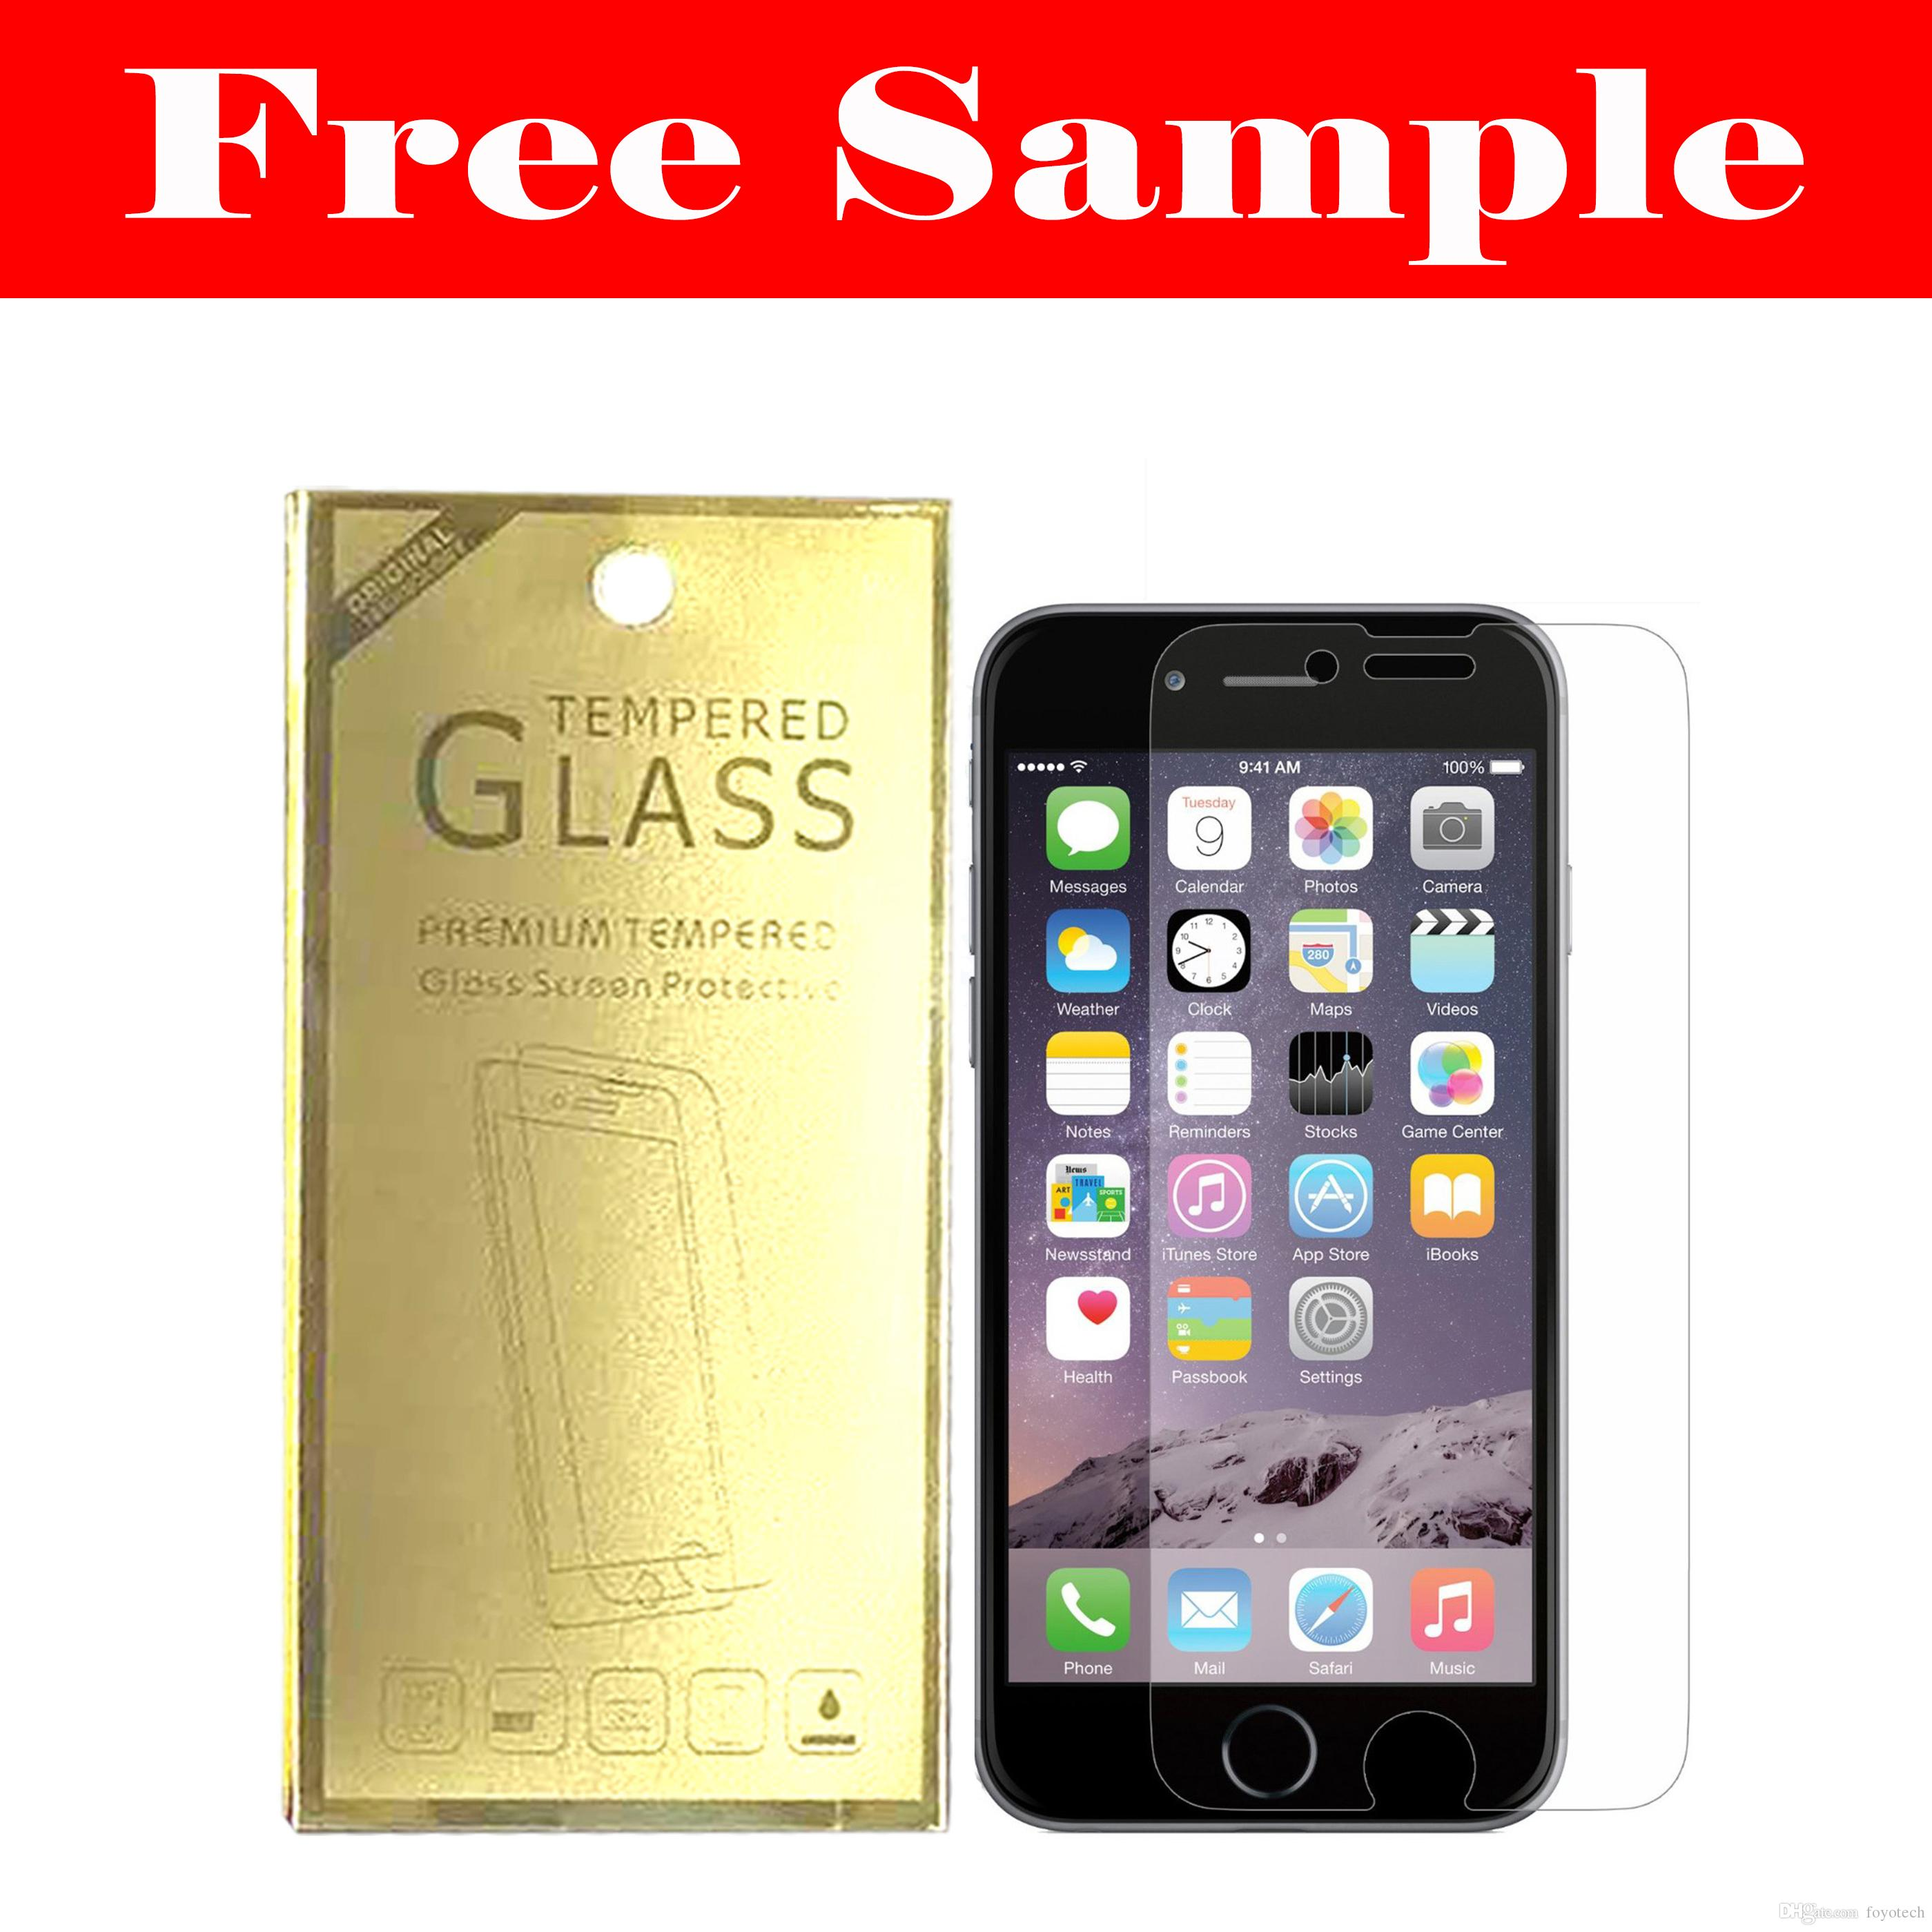 Free Sample For Iphone 6 Plus 5s 4 Samsung Galaxy S6 S5 S4 Note5 3 Lenovo Vibe X S960 With Corning Gorilla Glass Tempered Film Screen Protector Retailbox Package Screenmate